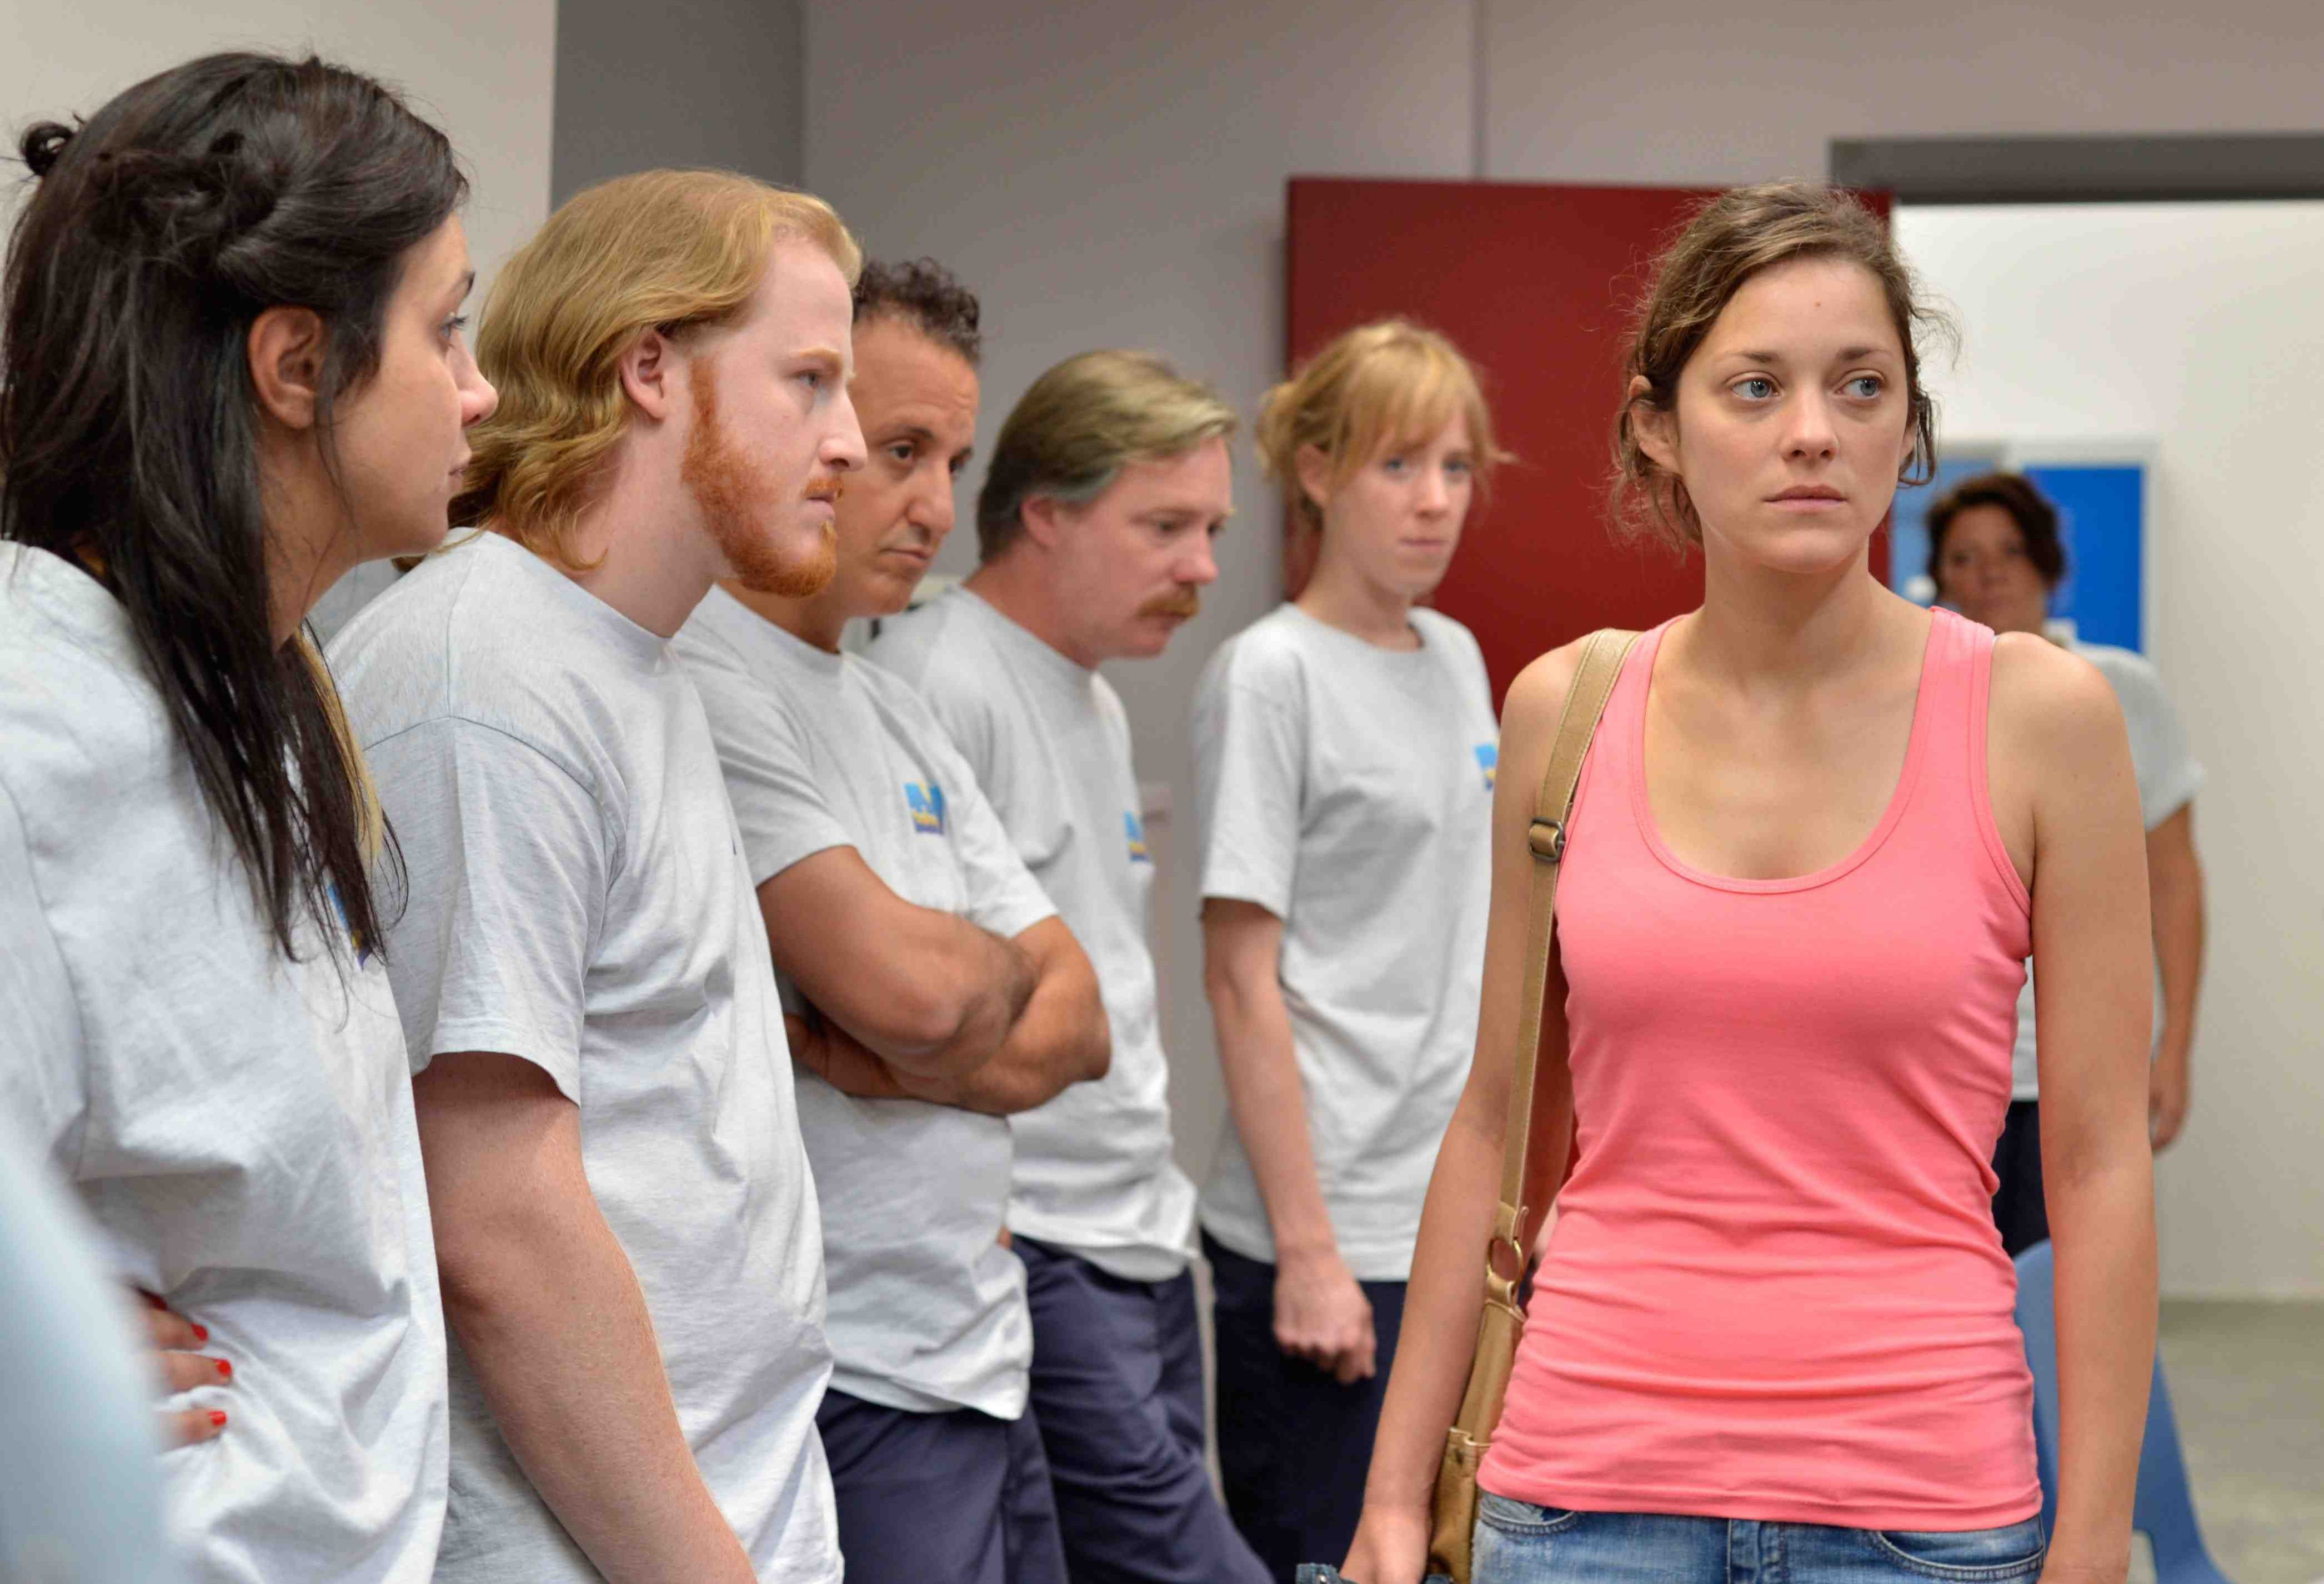 Marion Cotillard as Sandra being judged by her co-workers